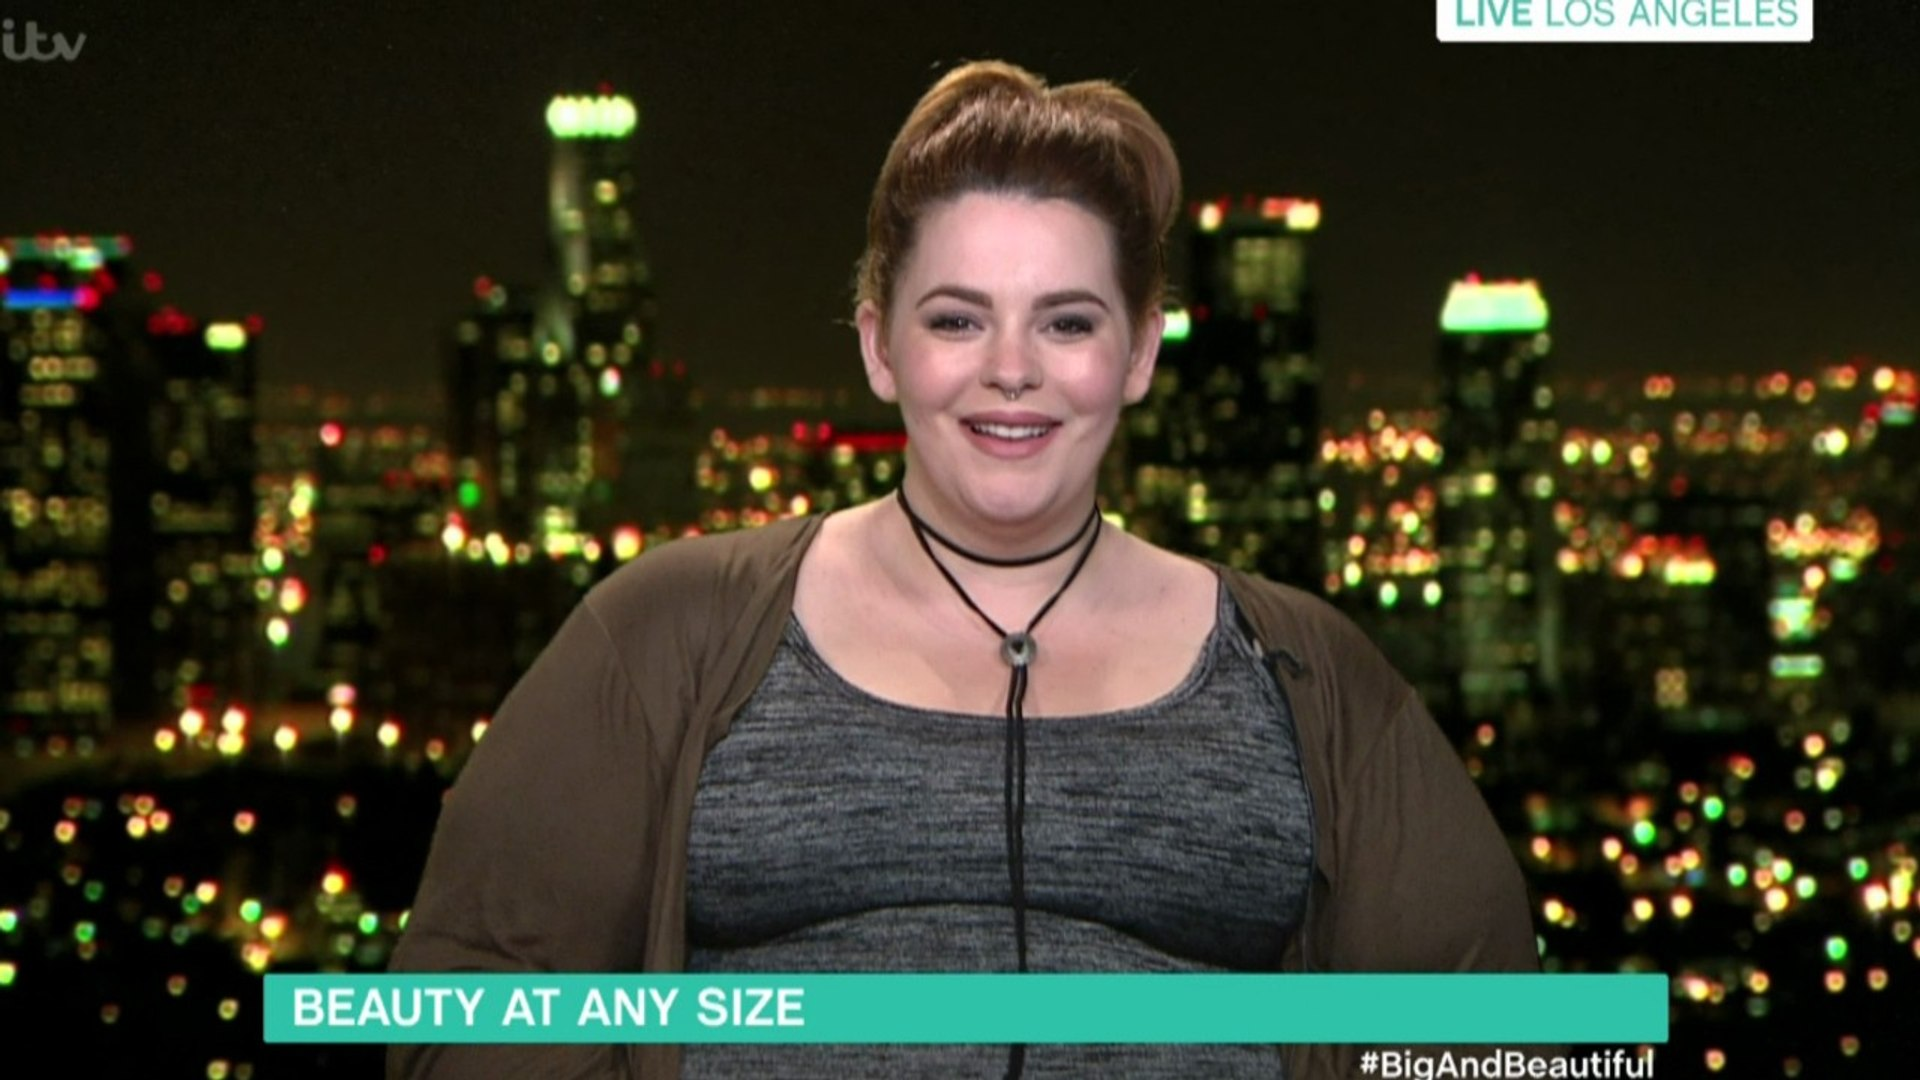 Tess Holliday on Why She Called Out Chloe Grace Moretz for 'Red Shoes' Body Shaming Contro